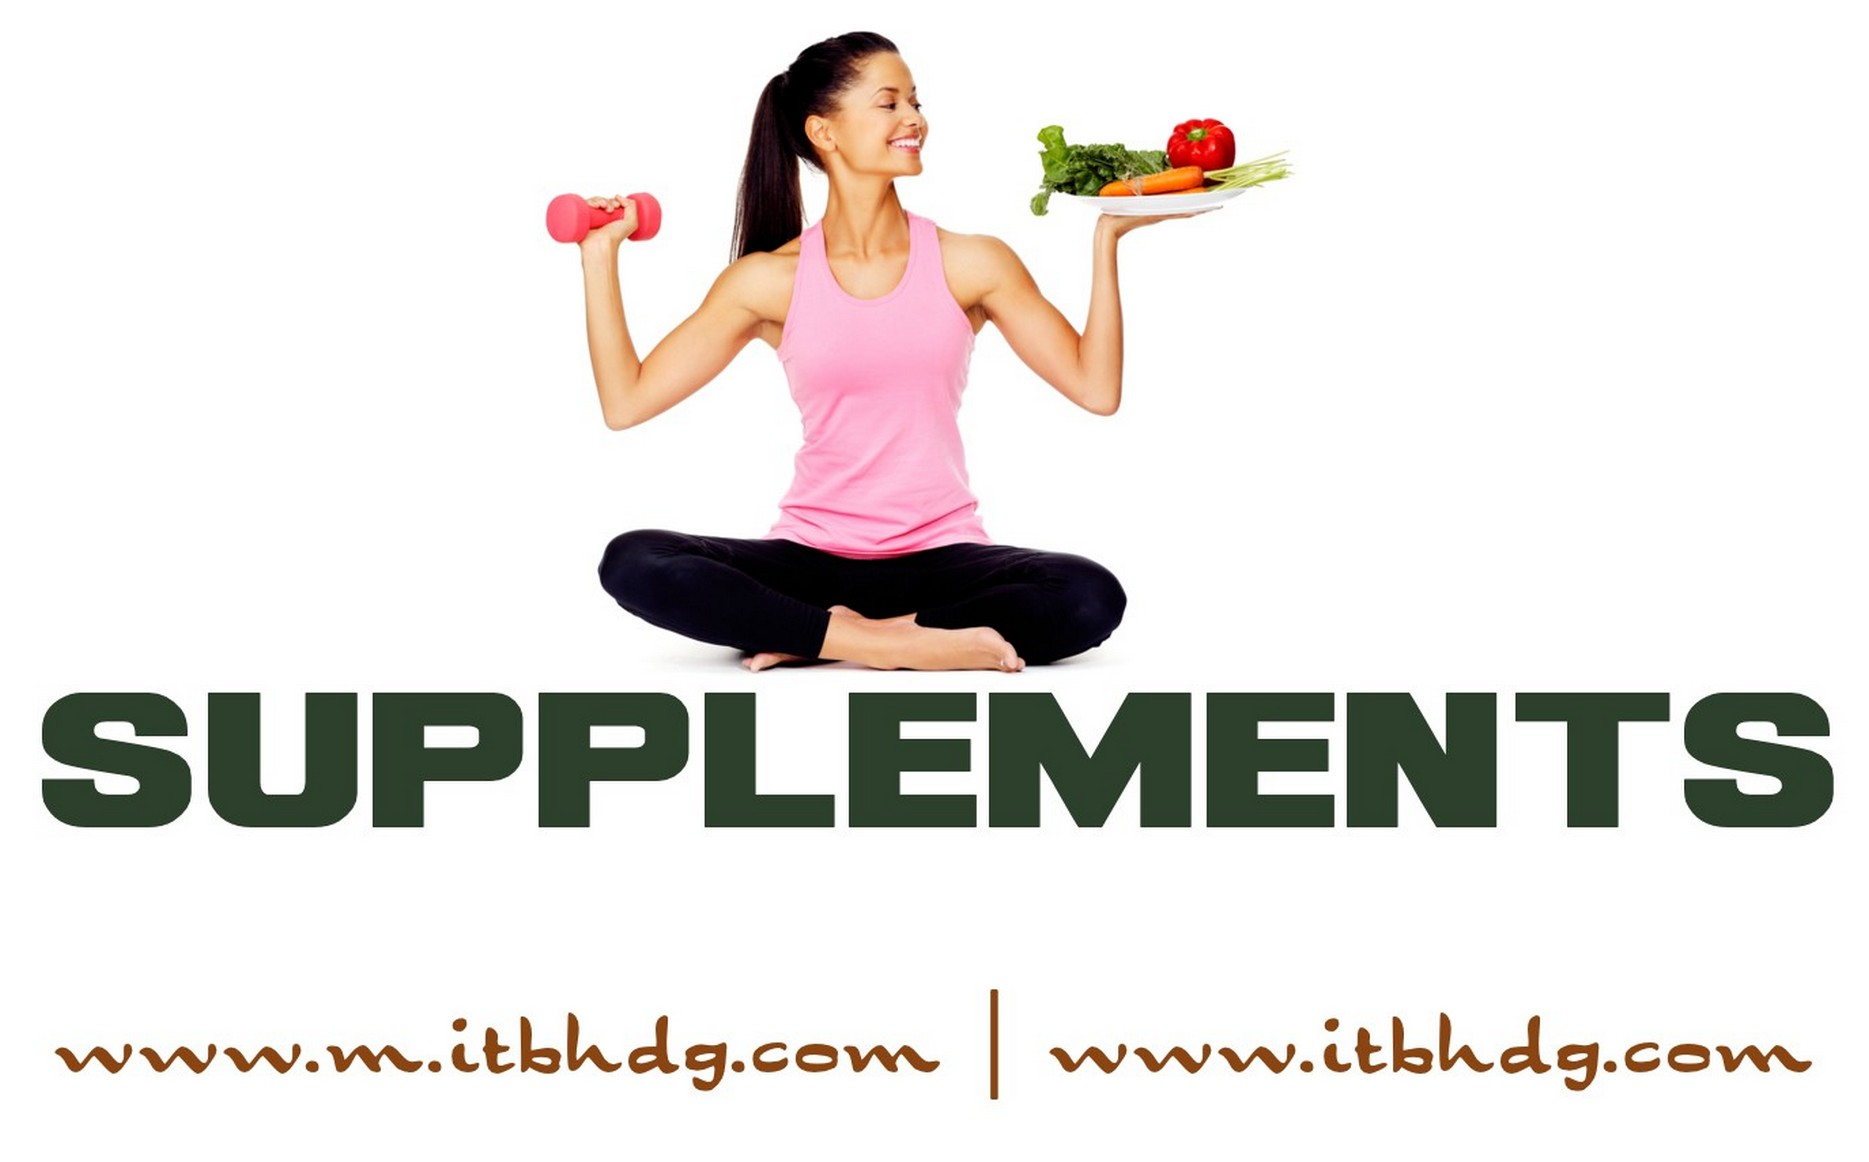 Expand the market of your dietary supplements | www.m.itbhdg.com | www.itbhdg.com